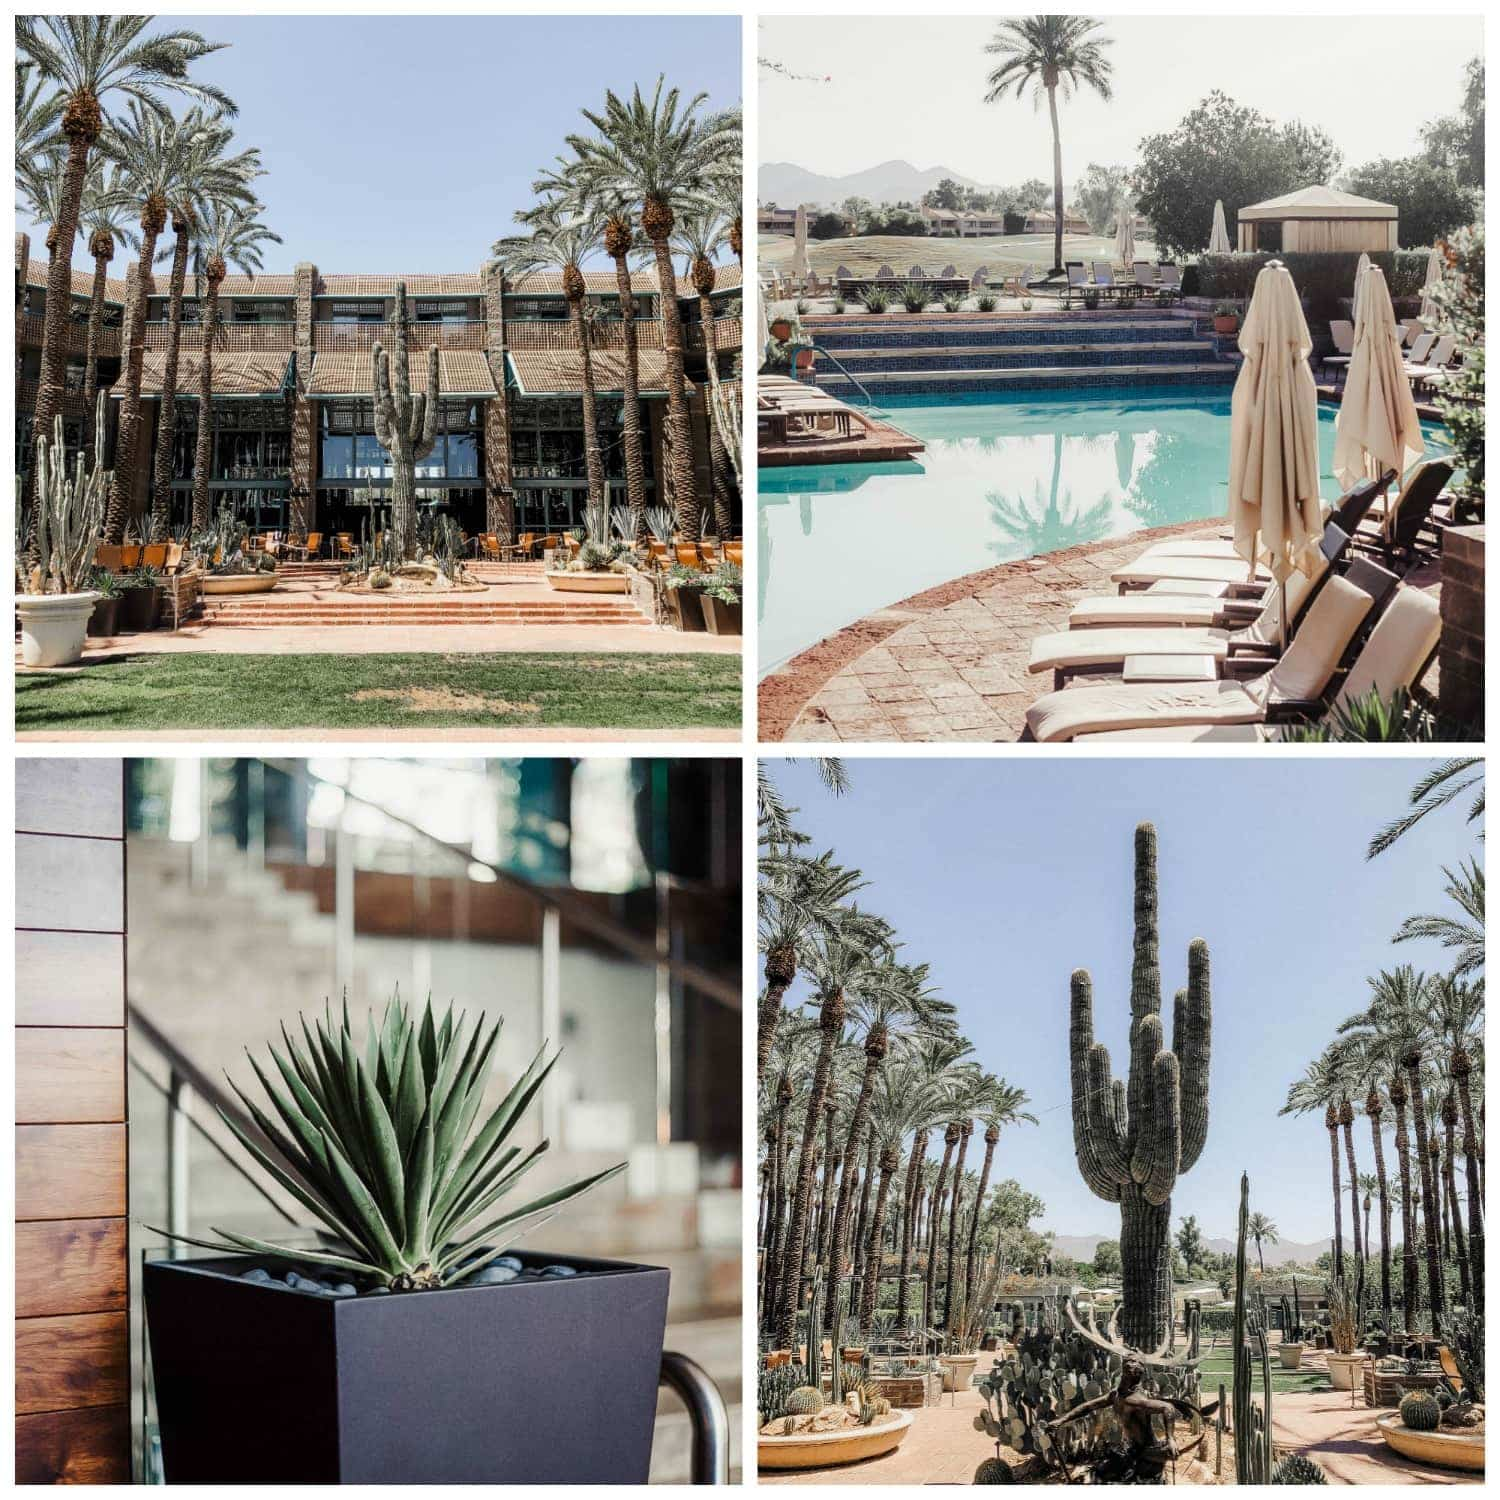 Hyatt Regency Scottsdale Resort at Gainey Ranch - as seen in Scottsdale travel guide by Meg O. on the Go